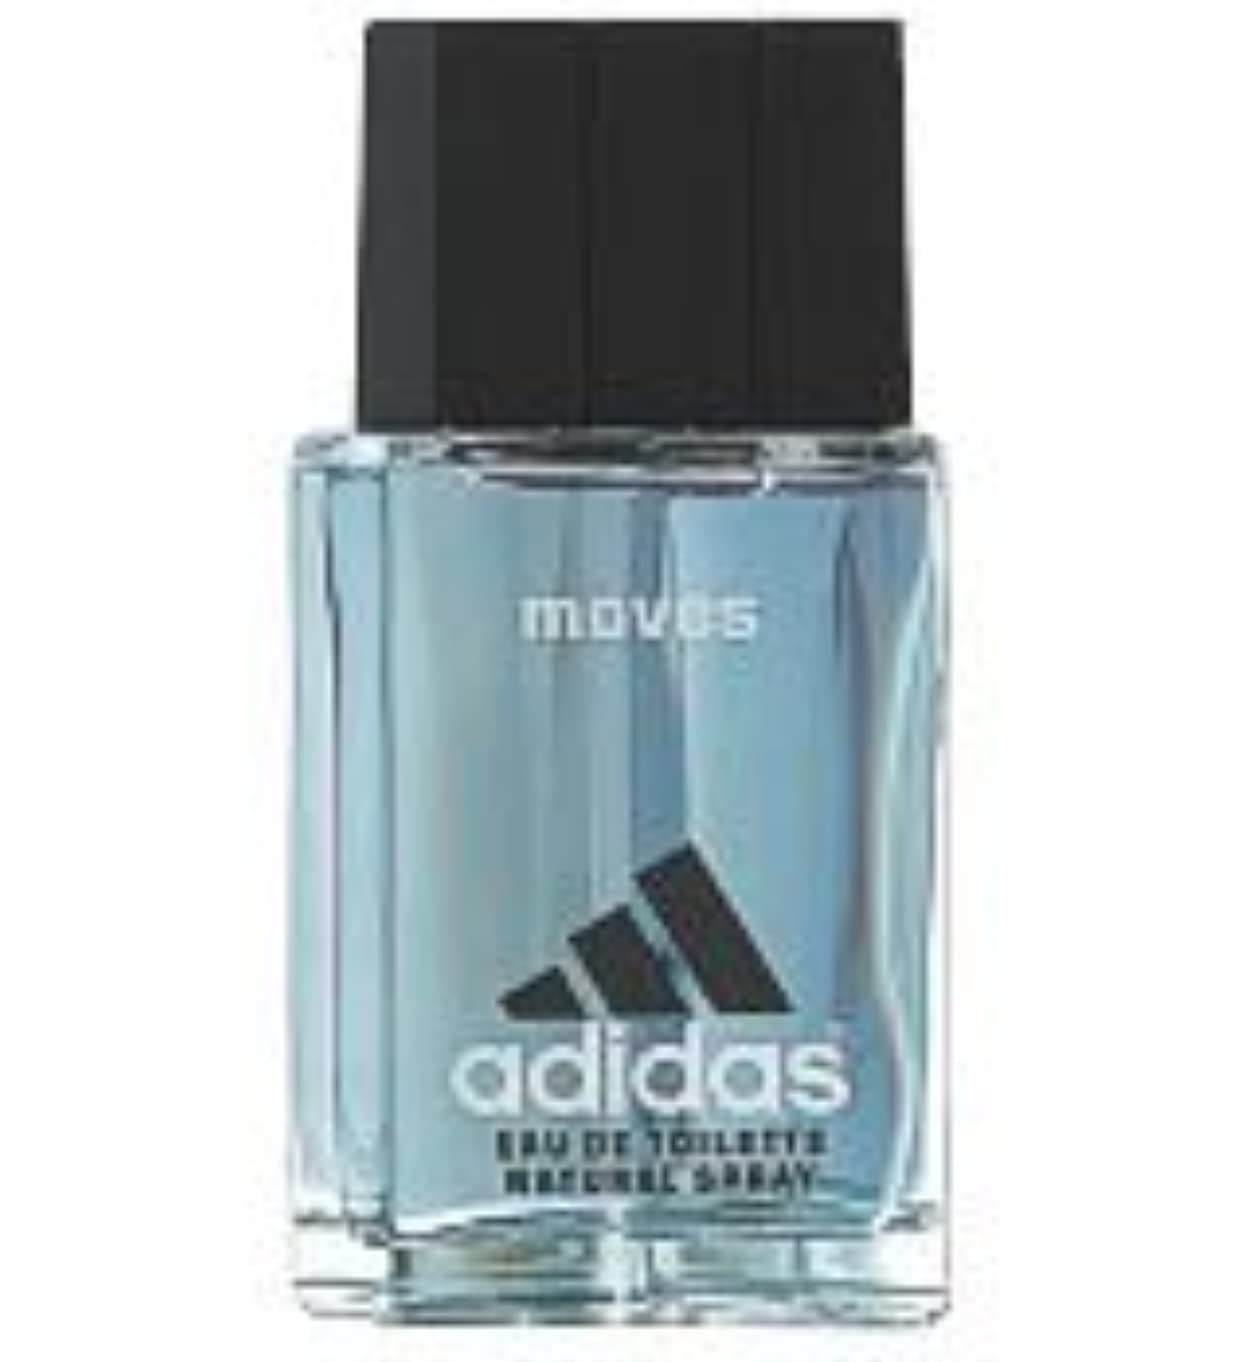 知事唇独占Adidas Moves (アディダスムーブス) 1.7 oz (50ml) Aftershave Splash by Adidas for Men